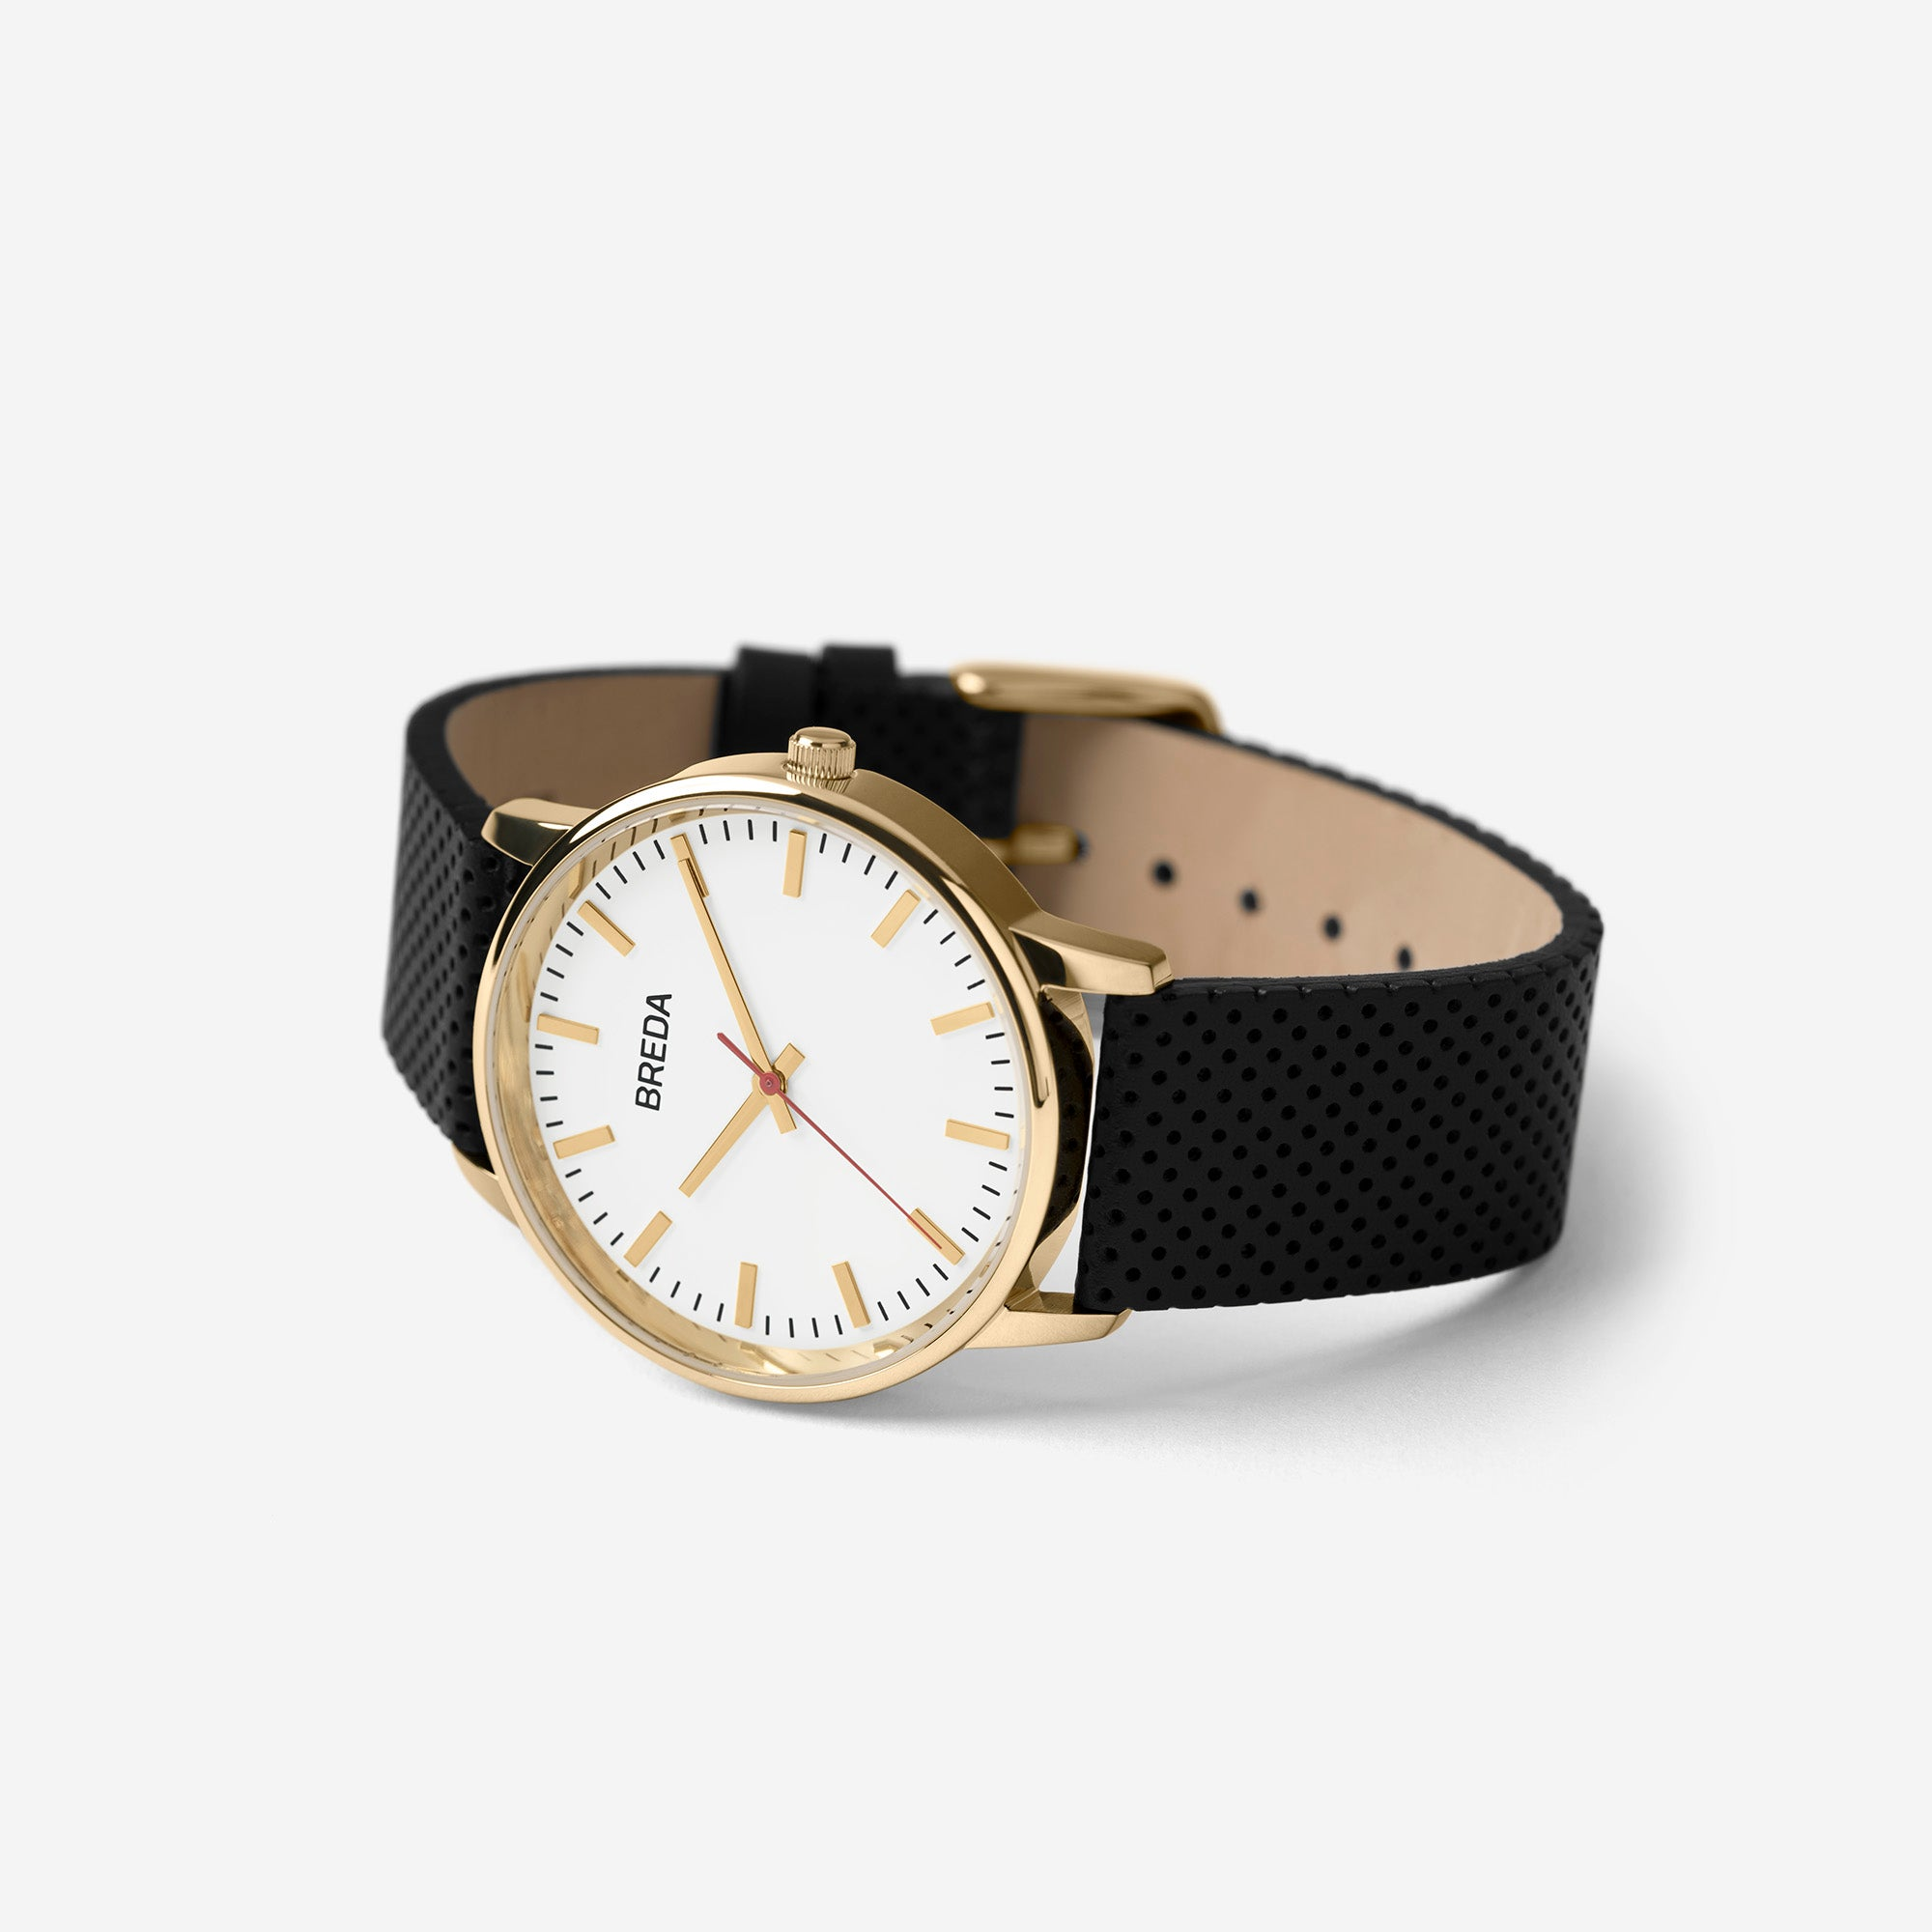 //cdn.shopify.com/s/files/1/0879/6650/products/breda-zapf-1725a-gold-black-leather-watch-angle_2f295662-c817-4741-8938-bc50bdb9b609_1024x1024.jpg?v=1542818328